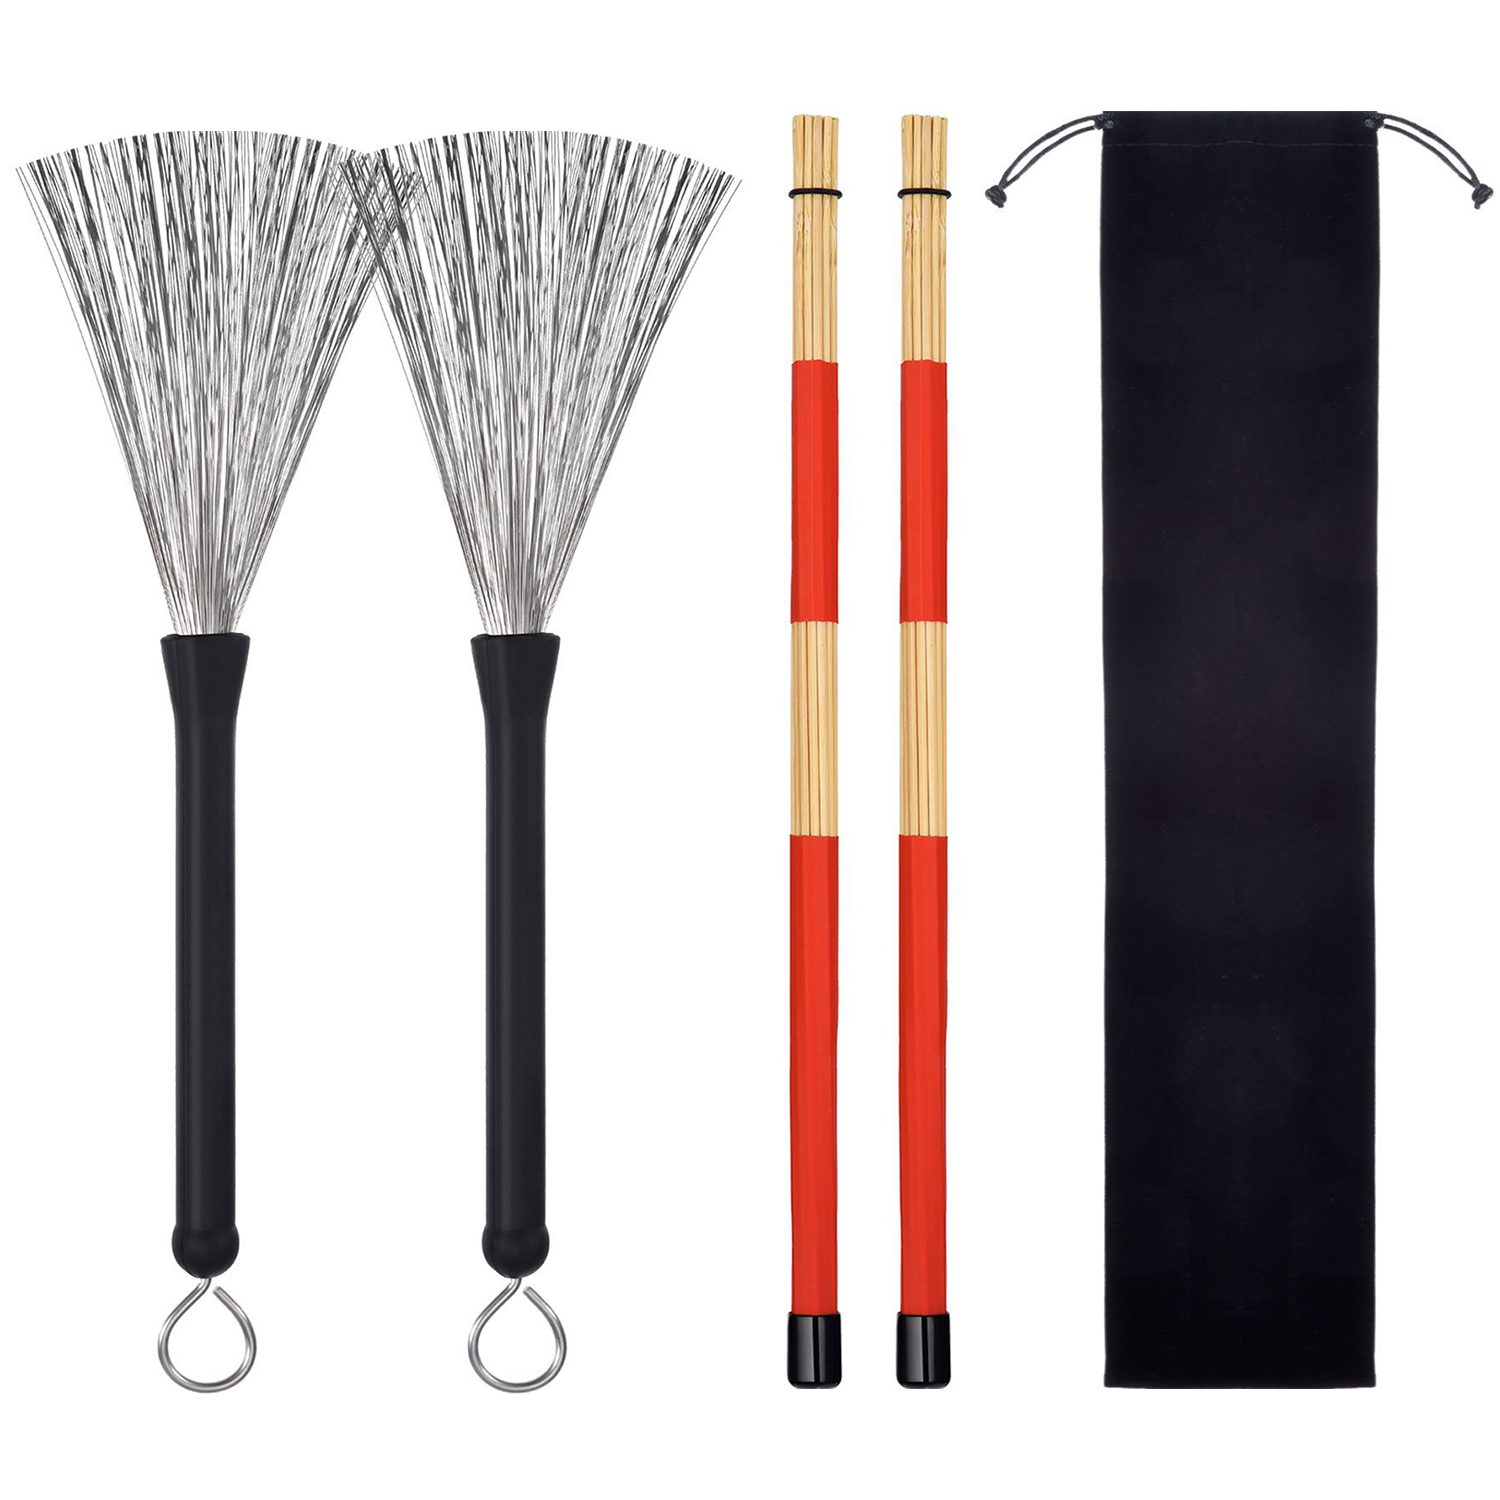 XFDZ 1 Pair Drum Brushes Retractable Wire Brushes Sticks Brush + 1 Pair Rods Drum Brushes Sticks Set